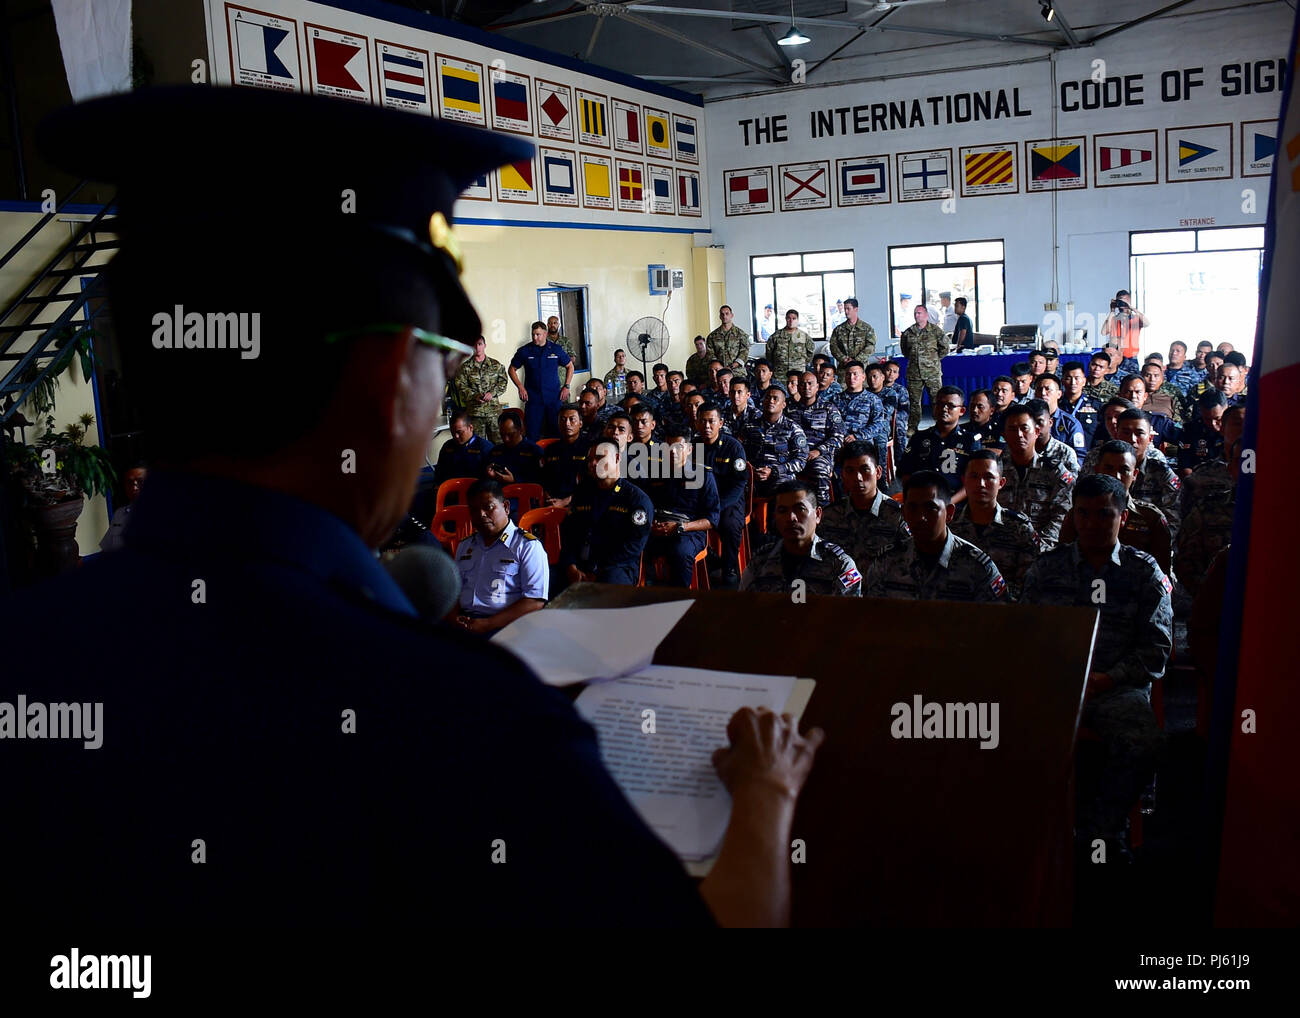 180831-N-QV906-0064 MANILA, Philippines (August 31, 2018) Commodore Joseph Badajos, acting commander, Philippine Coast Guard Surface Forces, delivers remarks during the closing ceremony for the VBSS-Workshop portion of Southeast Asia Cooperation and Training (SEACAT) 2018 aboard Philippine Coast Guard Headquarters in Manila, Philippines. This is the 17th annual SEACAT exercise and includes participants from the U.S., Brunei, Bangladesh, Thailand, Philippines, Singapore, Vietnam, Malaysia and Indonesia. (U.S. photo by Mass Communication Specialist 1st Class Micah Blechner/RELEASED) - Stock Image